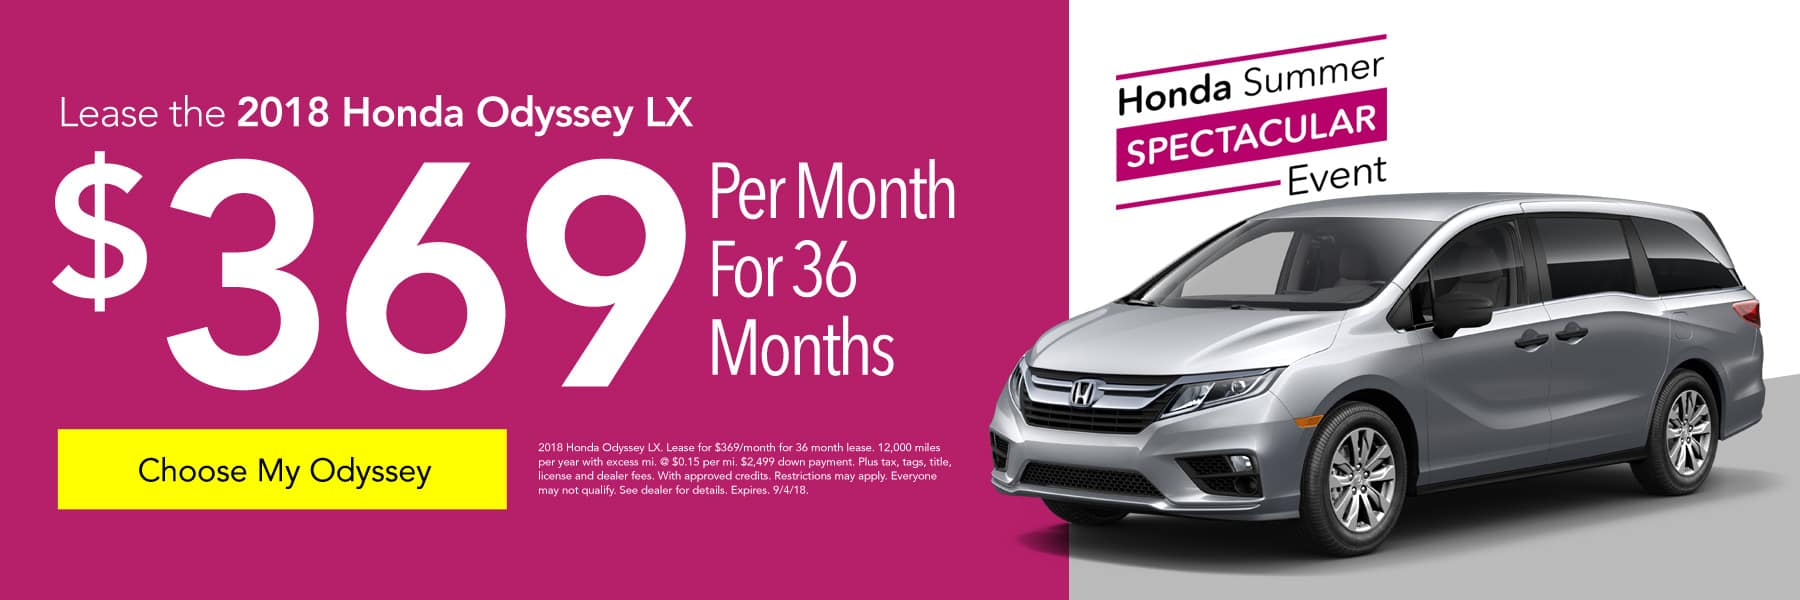 Lease the 2018 Honda Odyssey LX for $369/month for 36 months - Choose My Odyssey